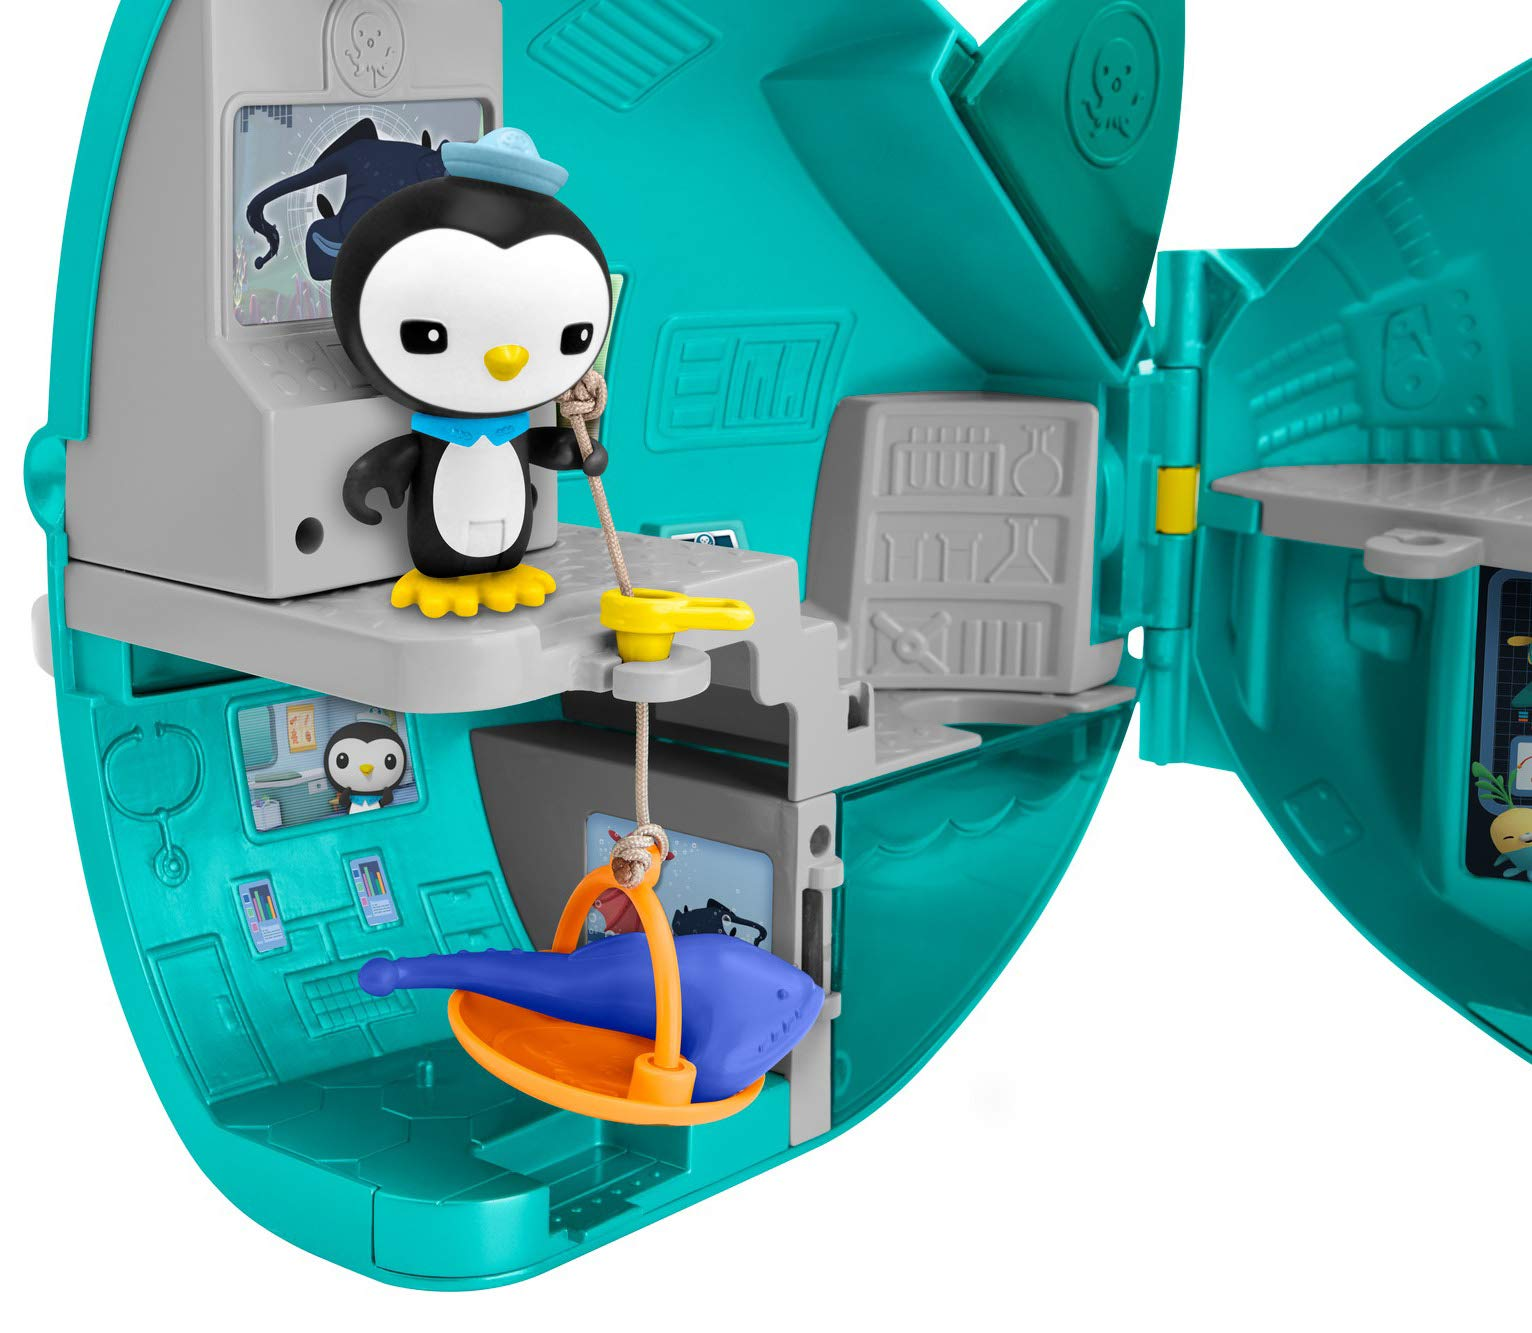 Fisher-Price Octonauts Gup-A Megapack [Amazon Exclusive] by Fisher-Price (Image #2)